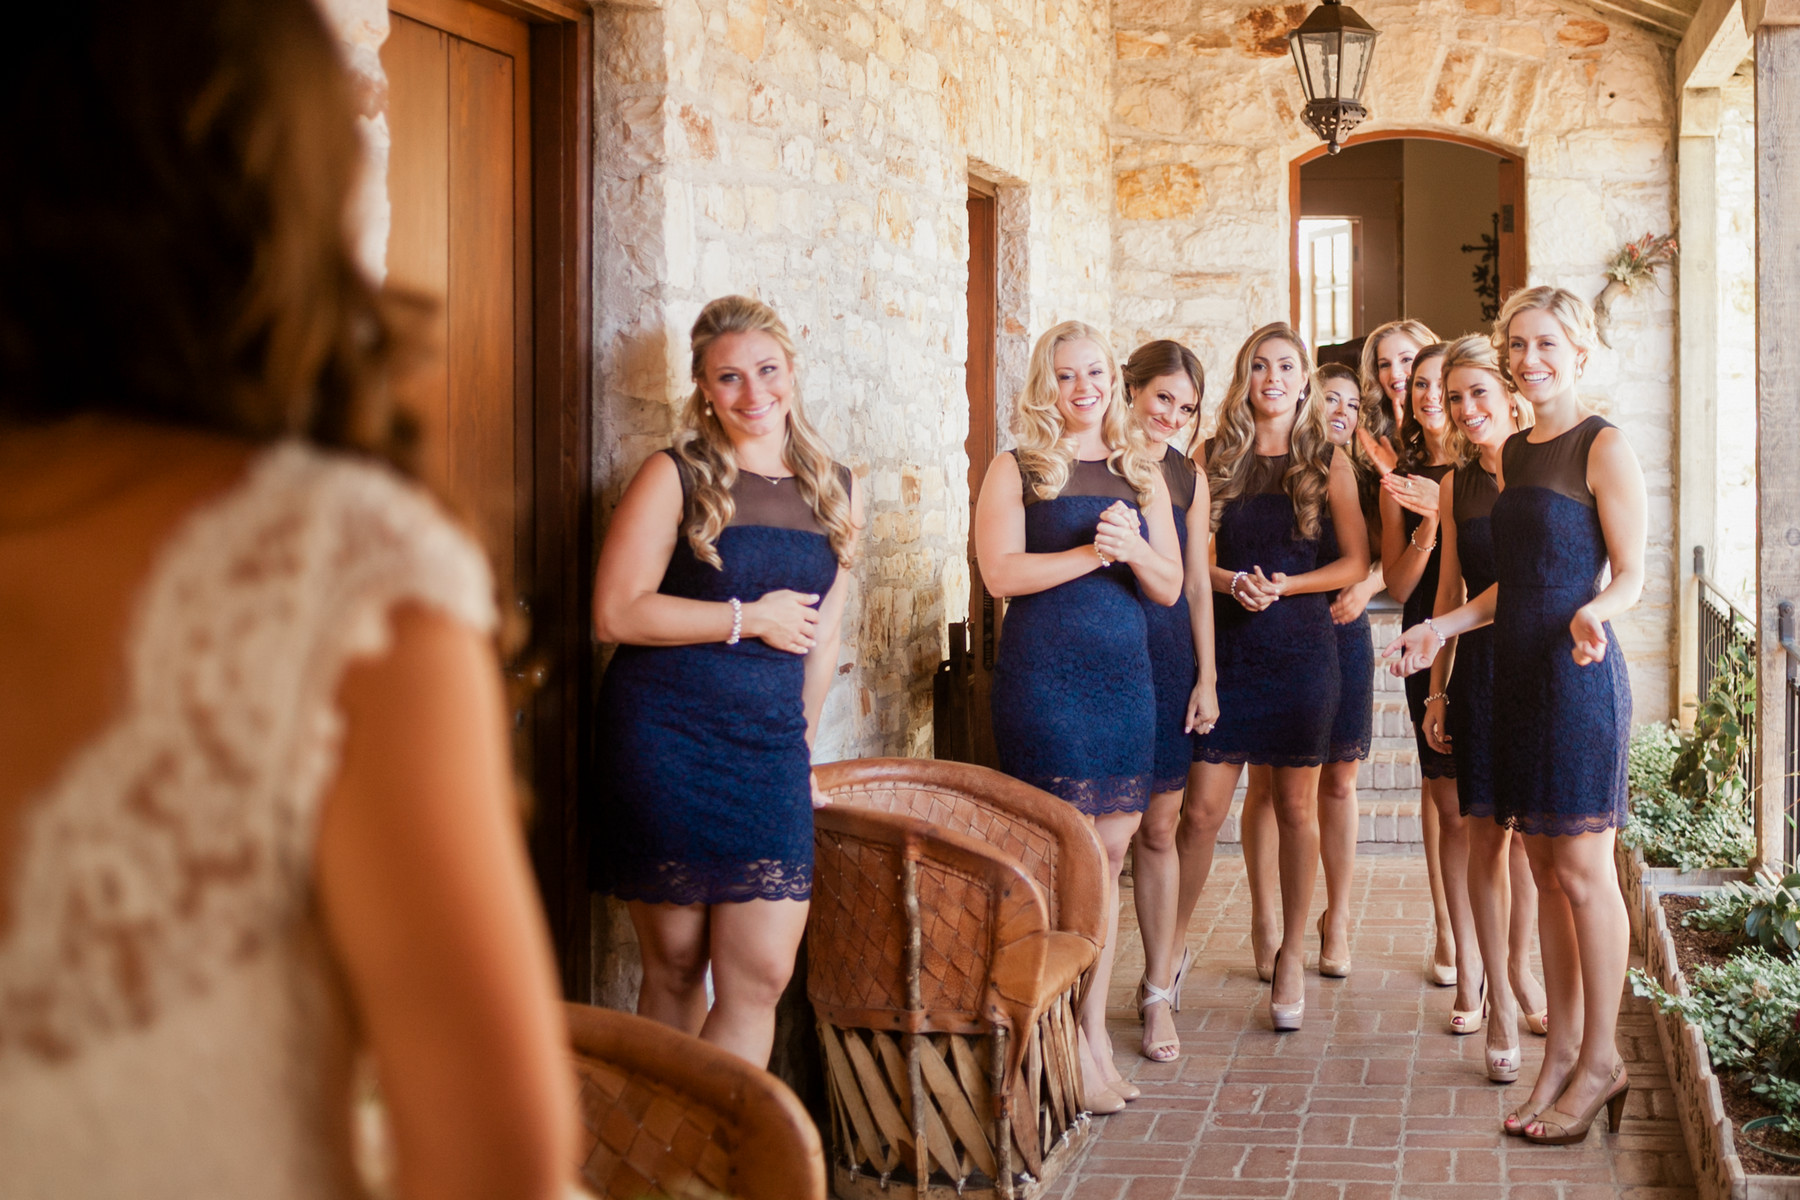 Bridesmaid in blue short knee length dresses welcome bride - photo by John and Joseph - Los Angeles